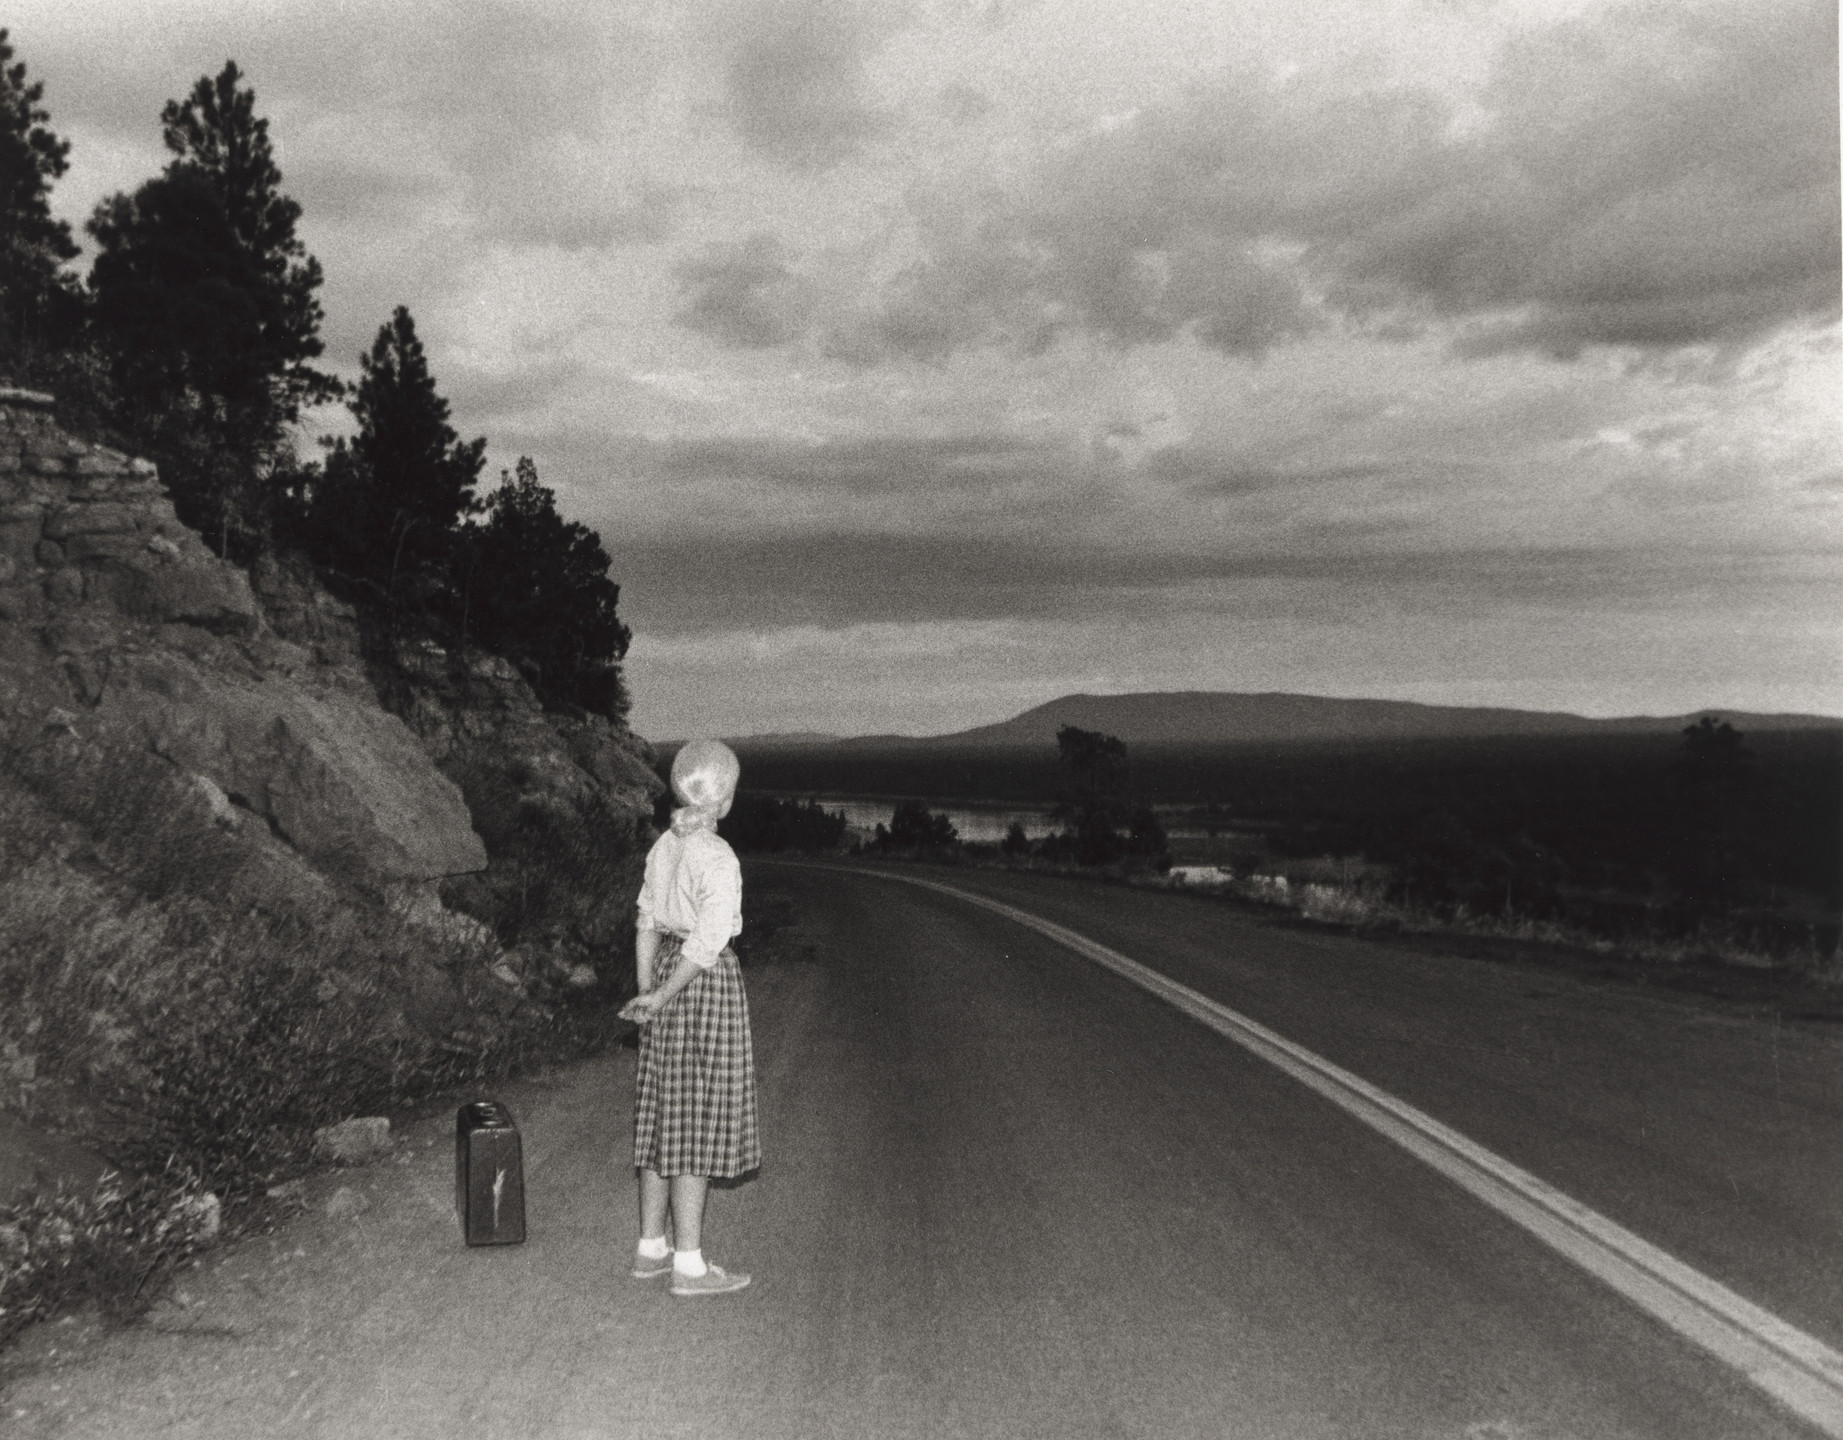 Cindy Sherman. Untitled Film Still #48. 1979